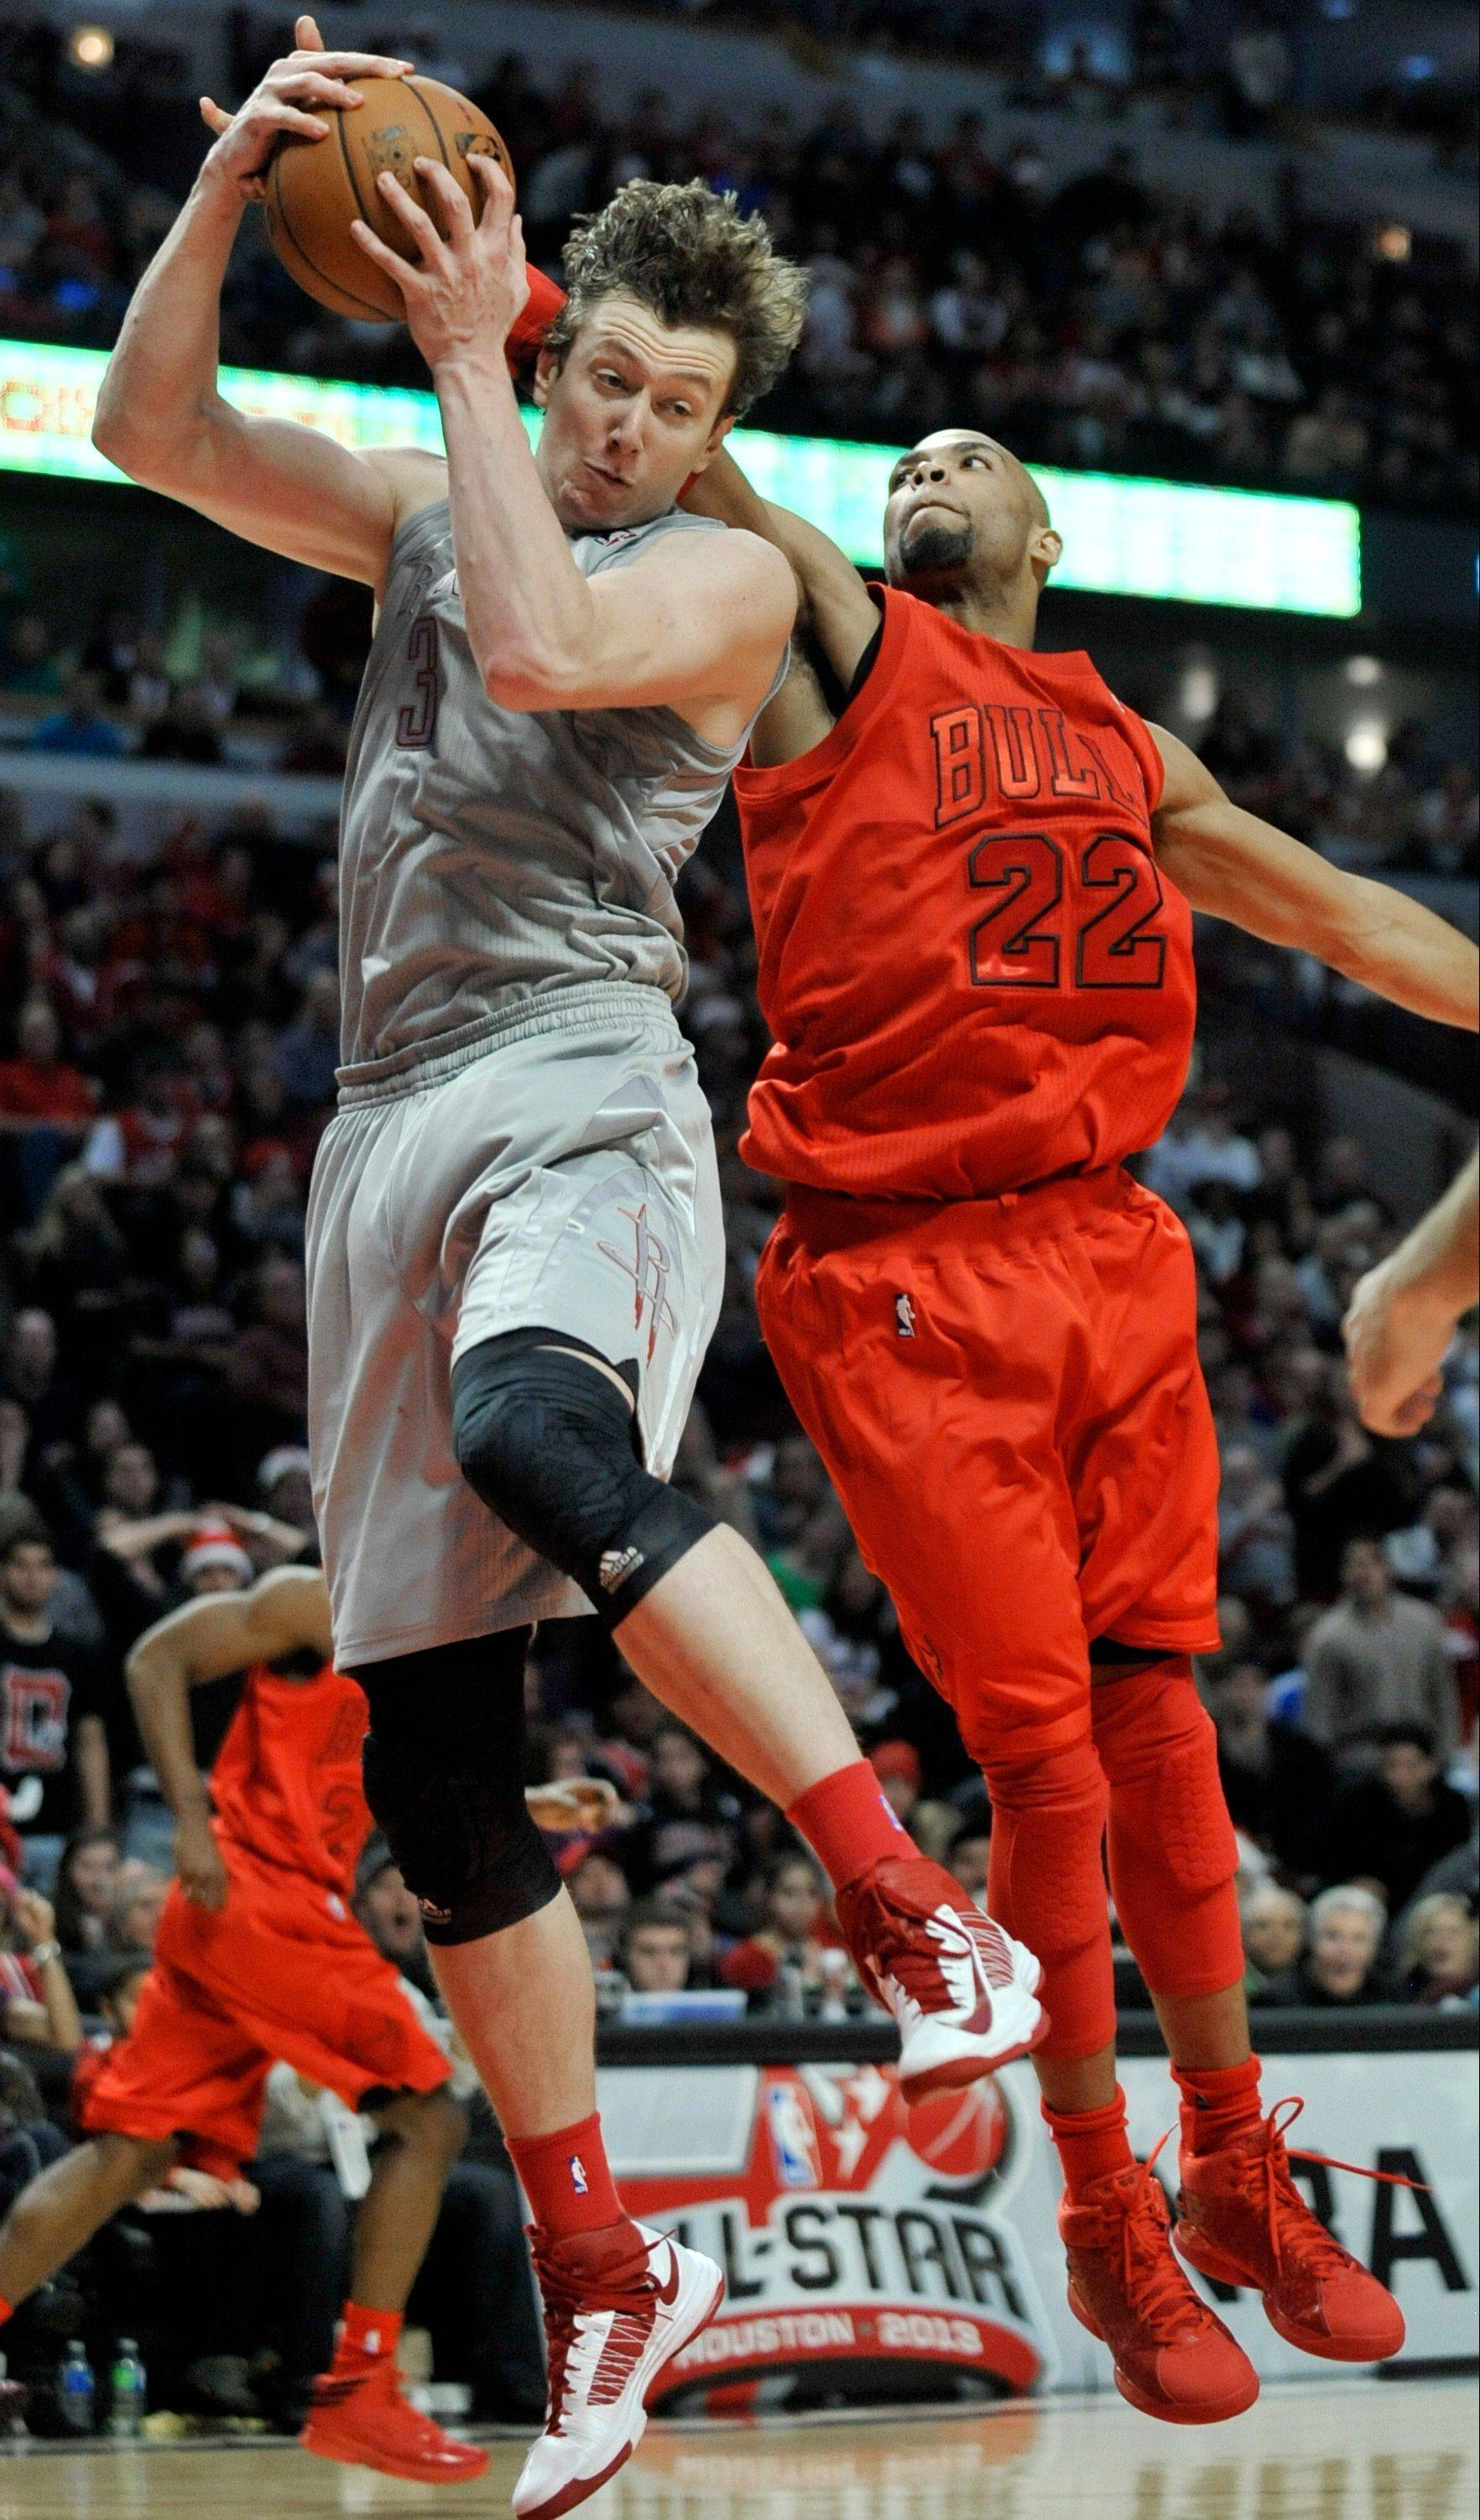 Omer Asik, left, battles Taj Gibson for a rebound during the fourth quarter of the Rockets' victory over the Bulls on Tuesday.